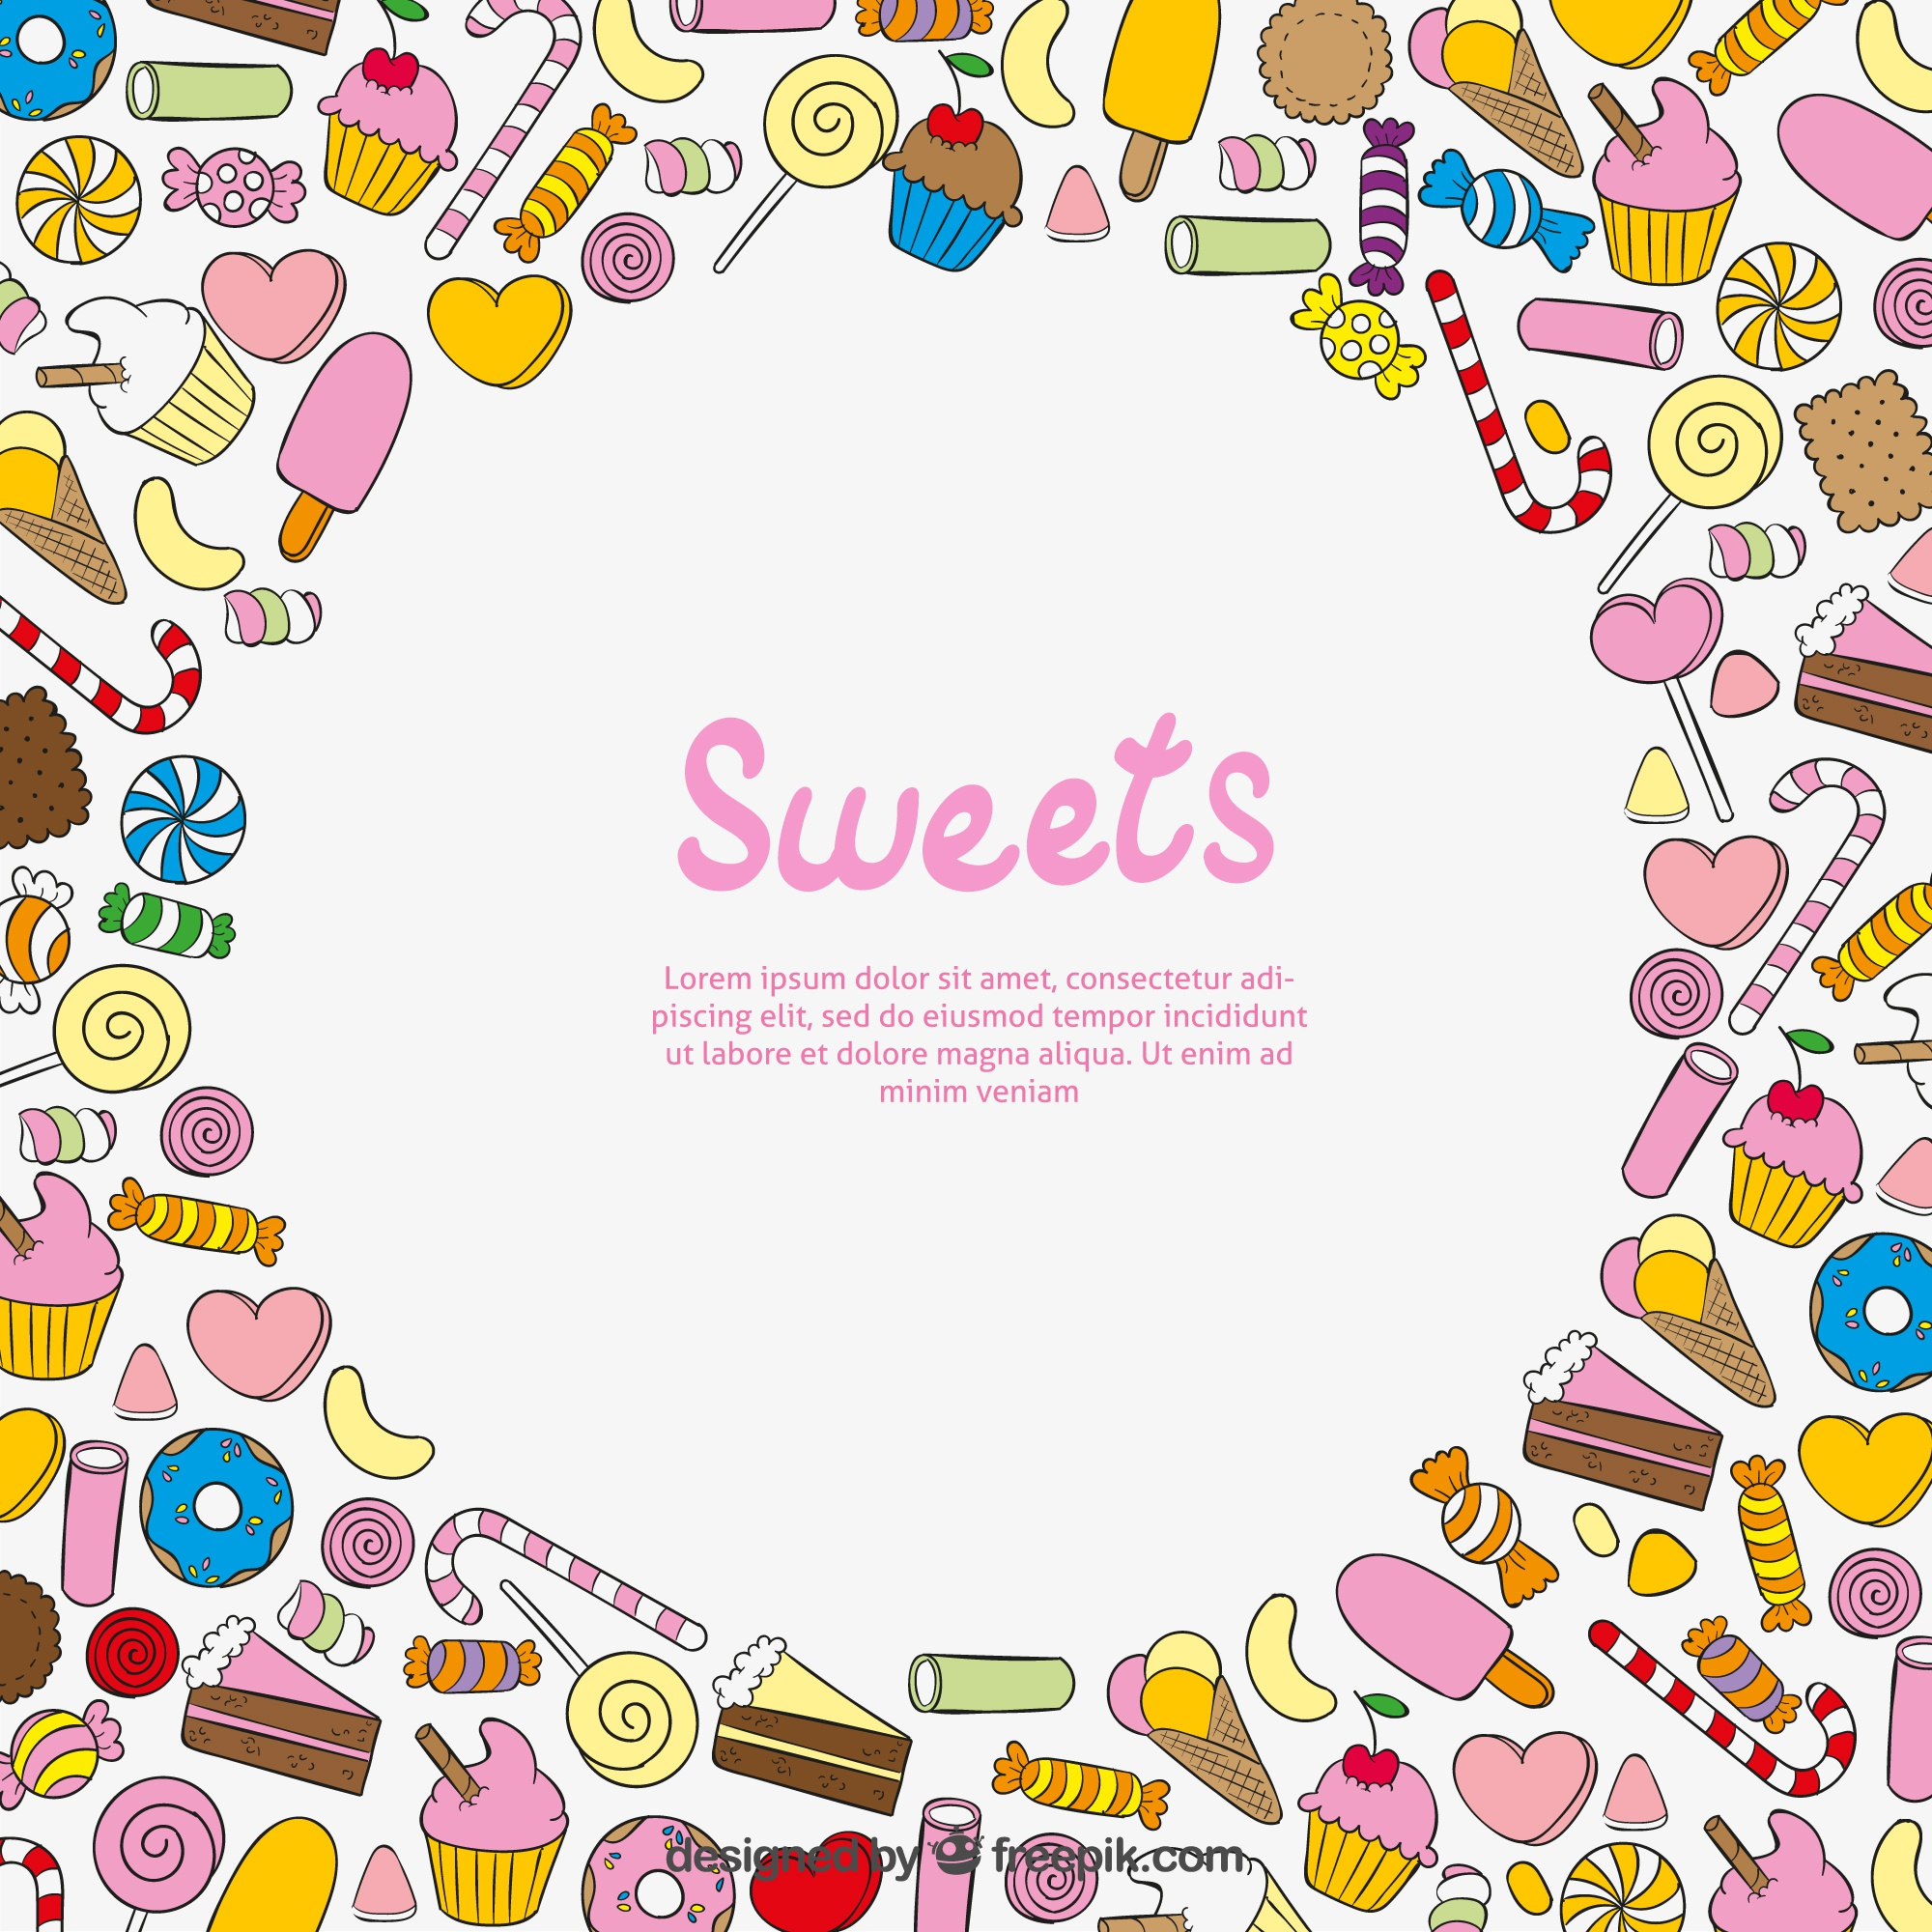 Sweets achtergrond